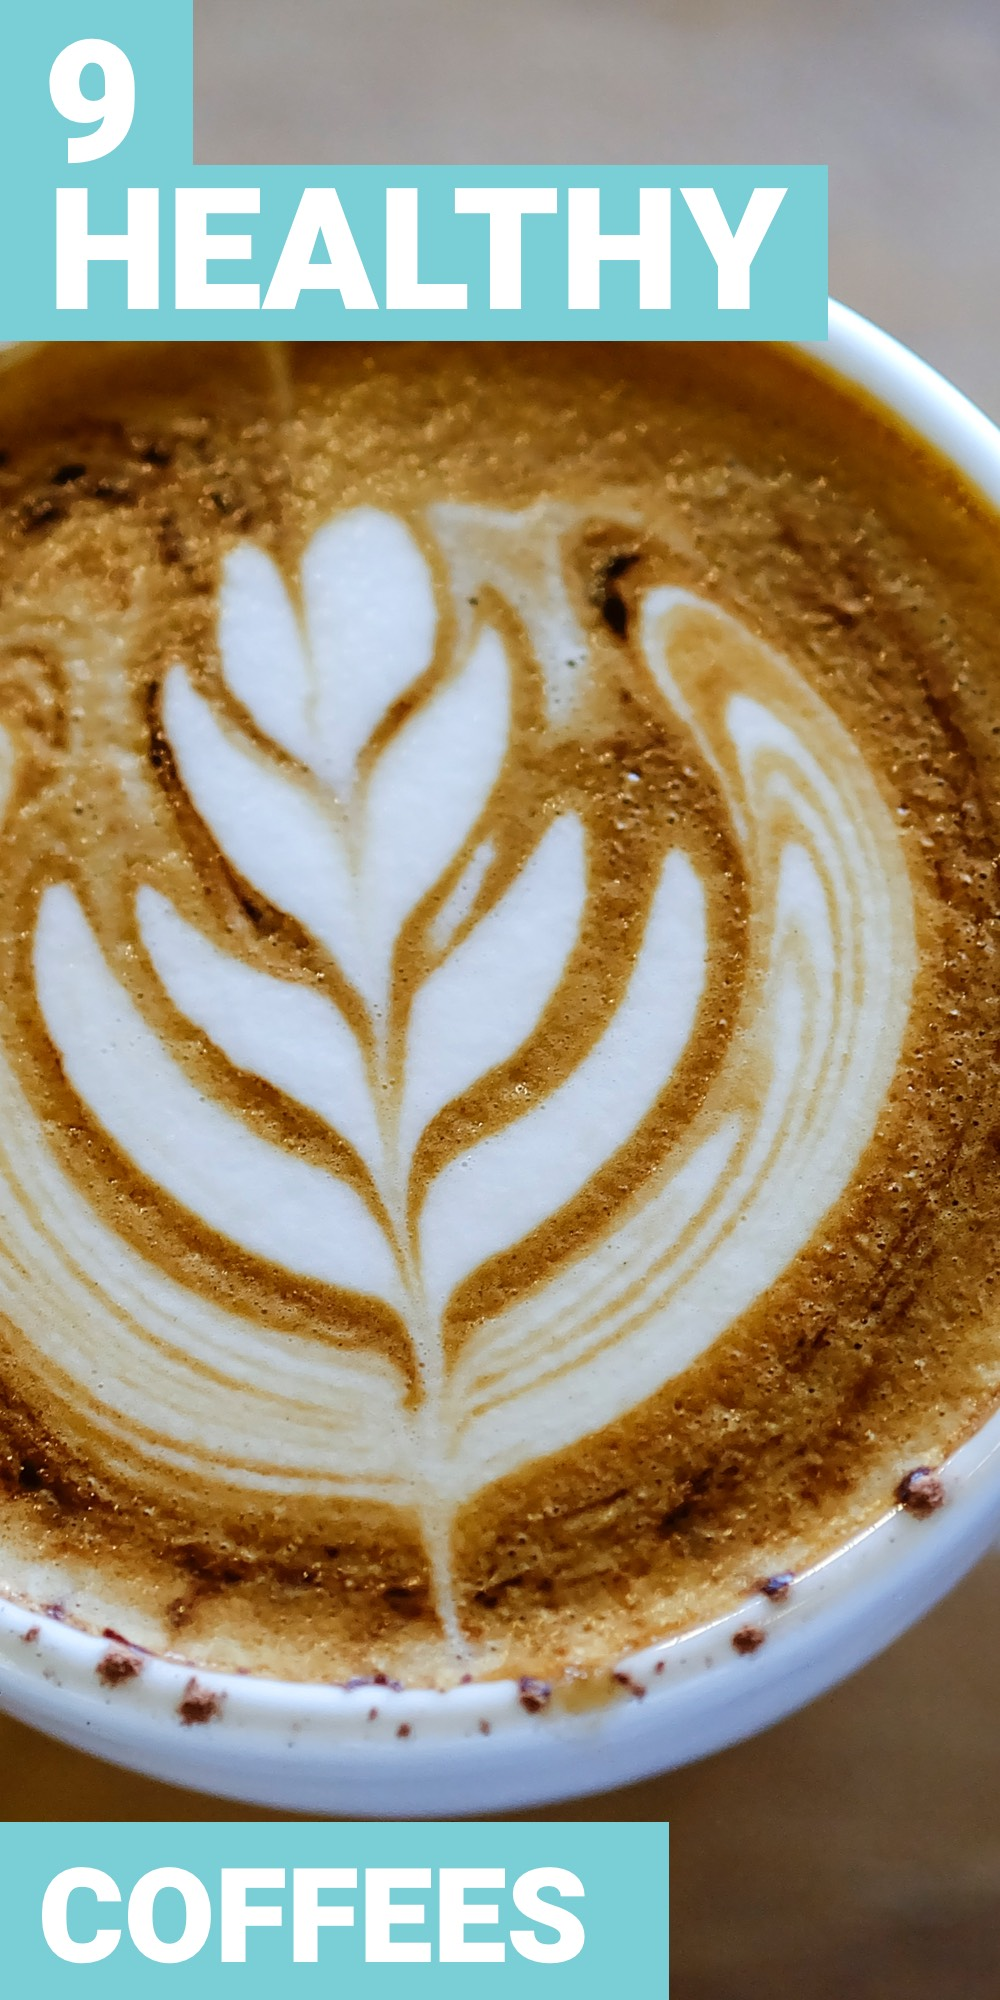 If you drink coffee every day, it's going to have an effect on your health. So you should drink healthy coffee. Here are 9 ways to make healthy coffee.